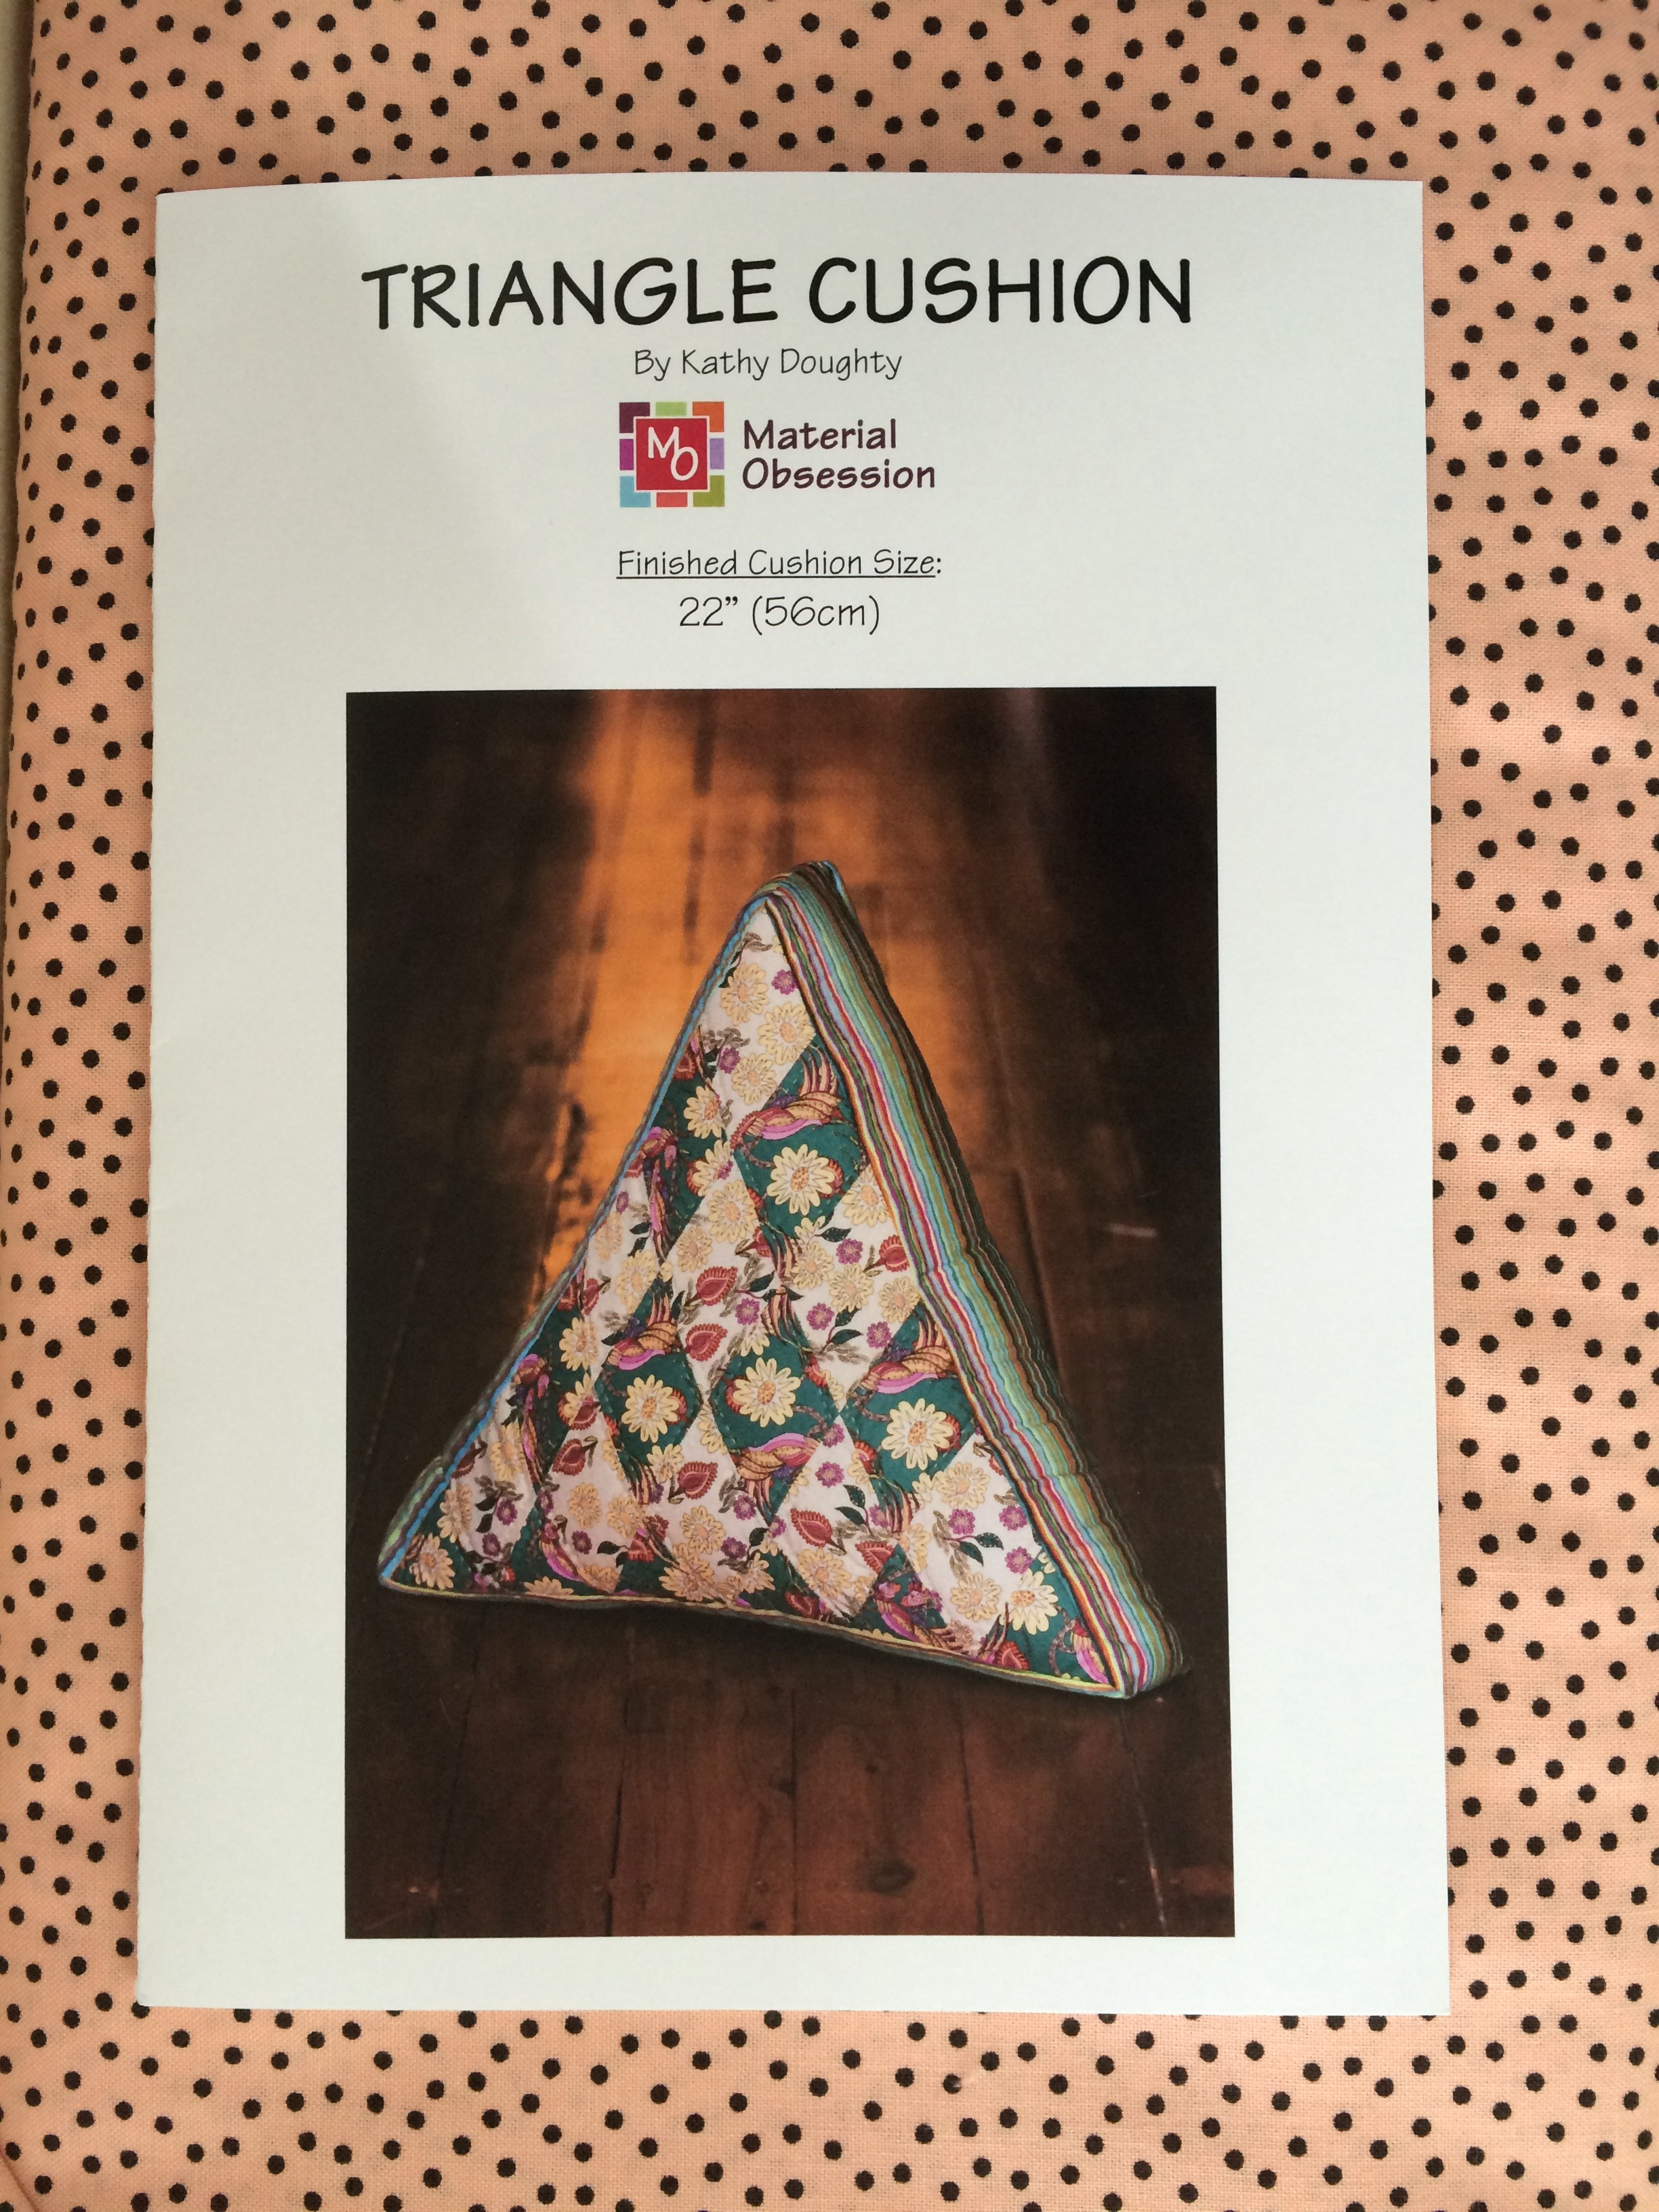 The Triangle Cushion pattern